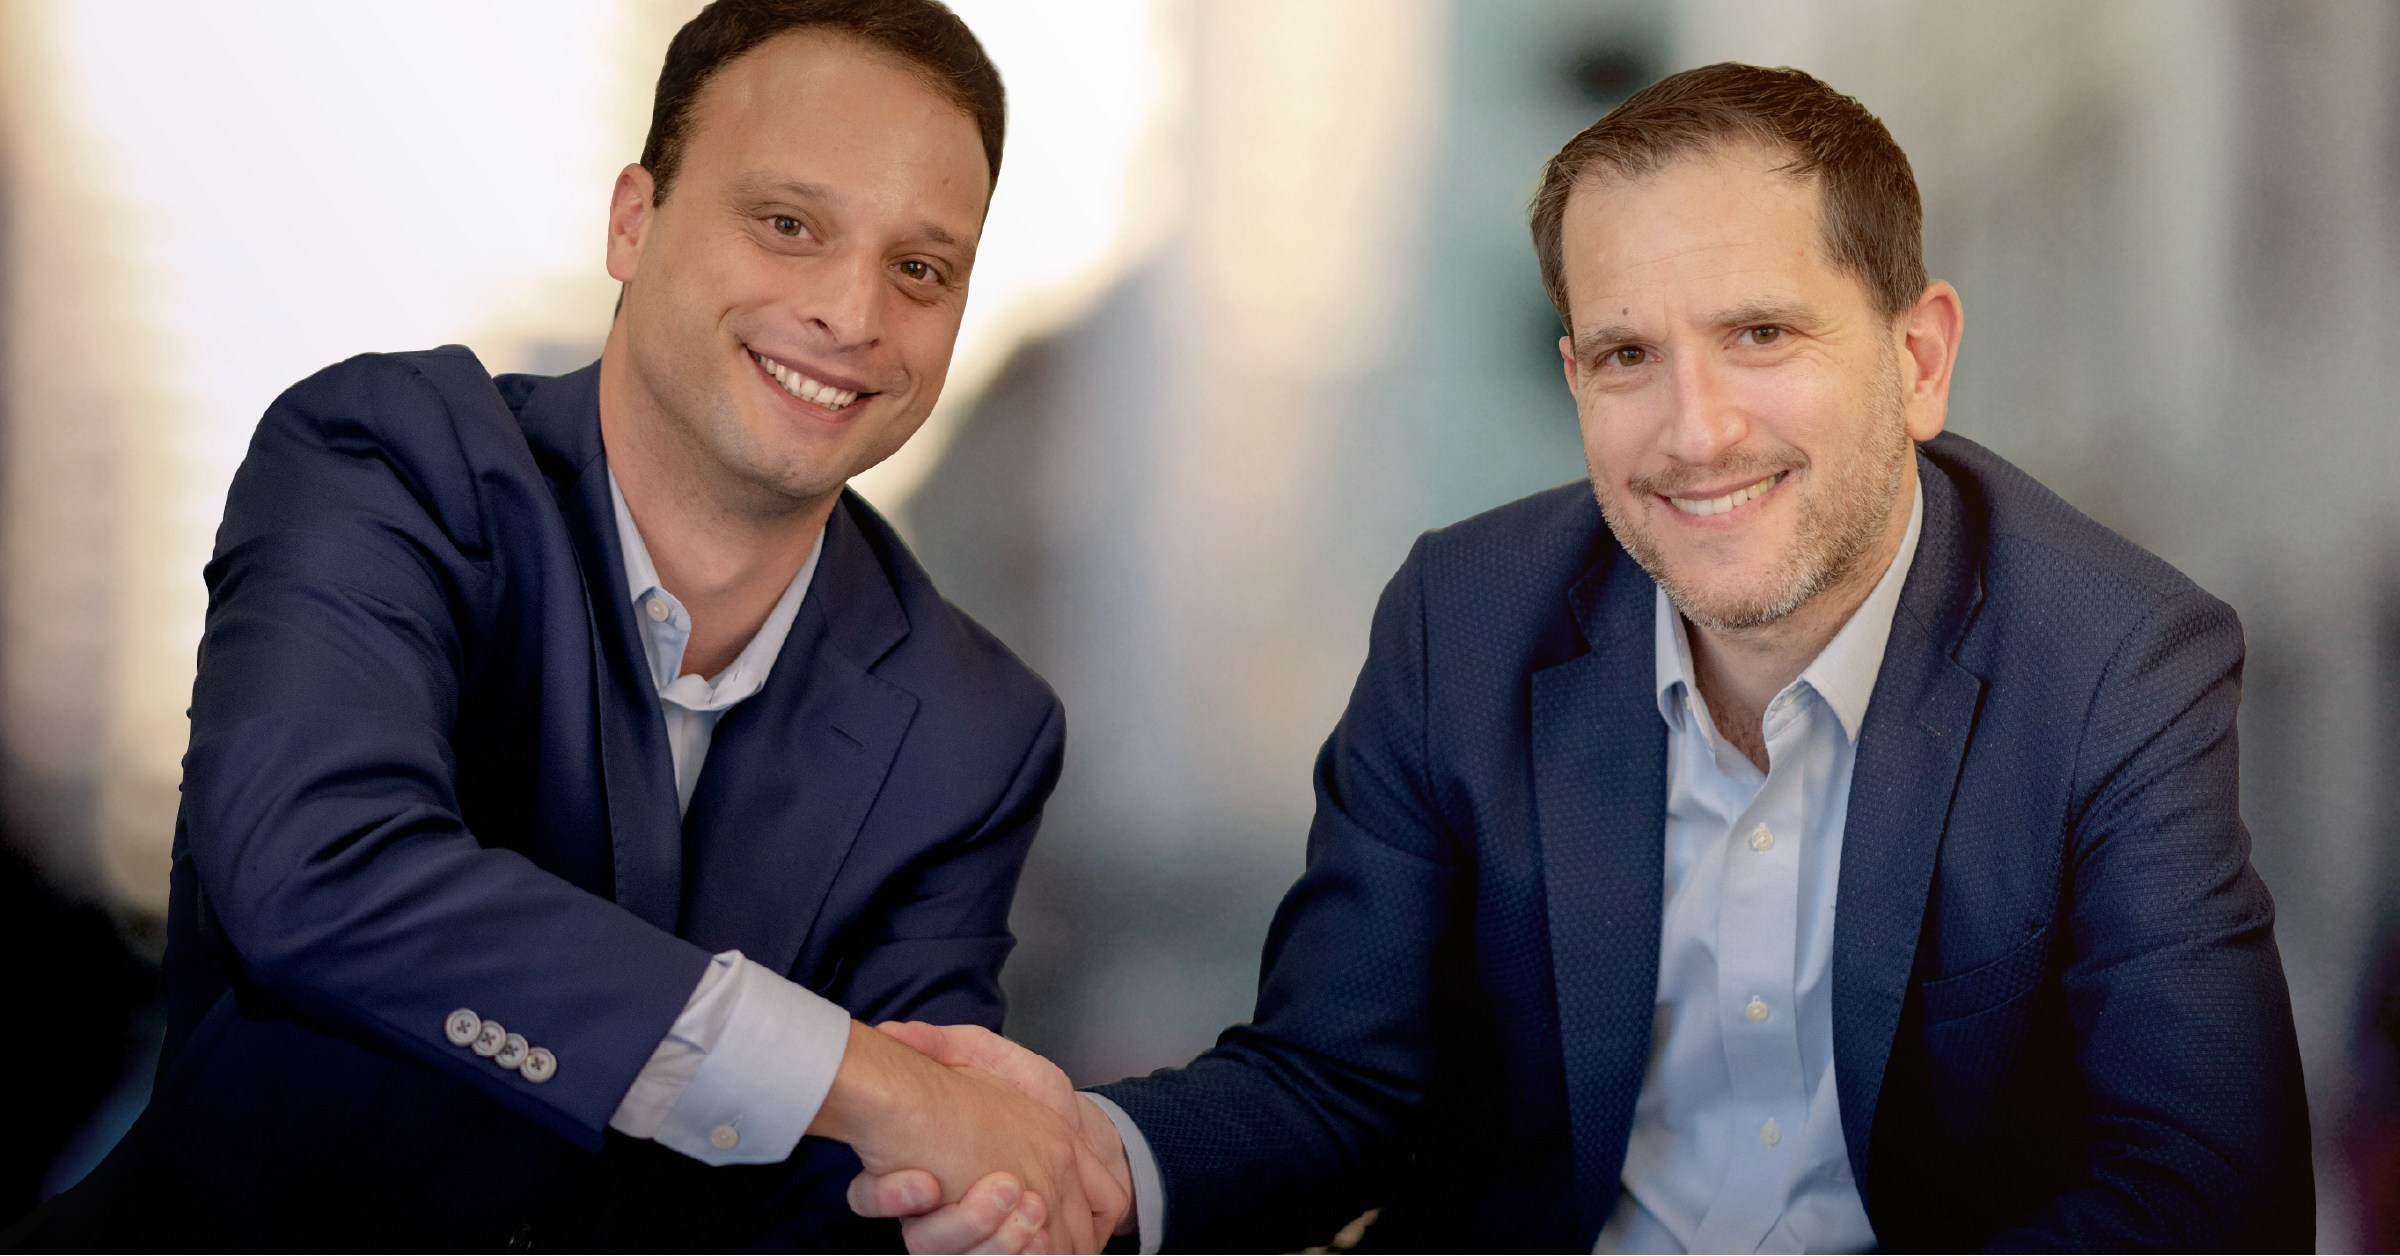 Periscope Data CEO and Co-Founder Harry Glaser (left) and Sisense CEO Amir Orad (right).